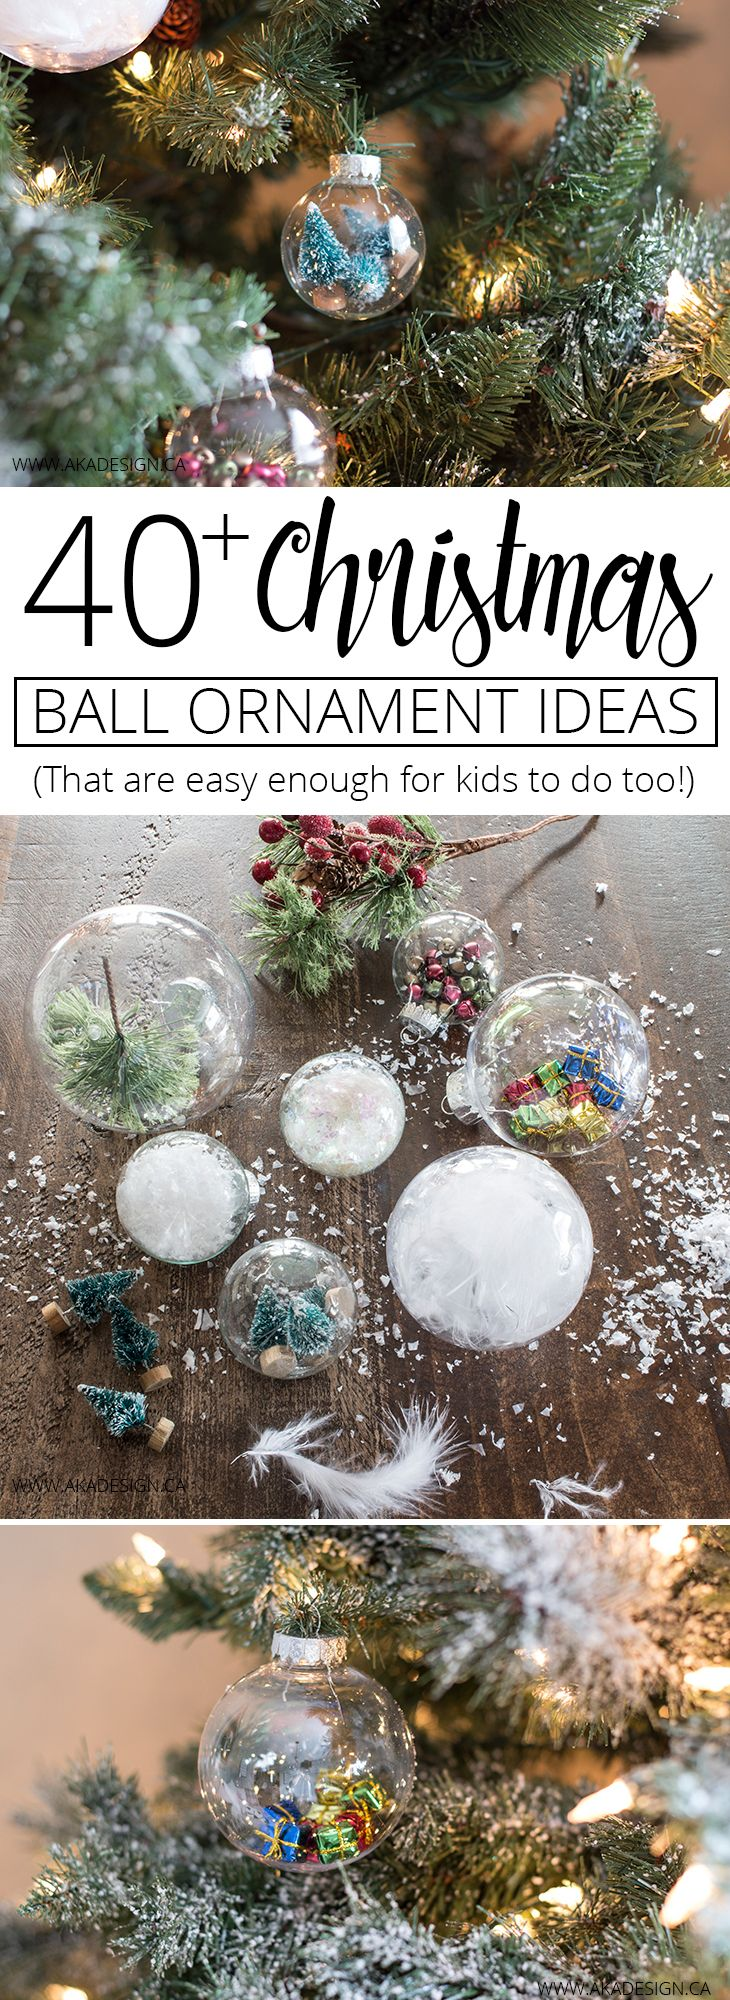 Design your own christmas ornaments - 40 Christmas Ball Ornament Ideas For You To Try This Year